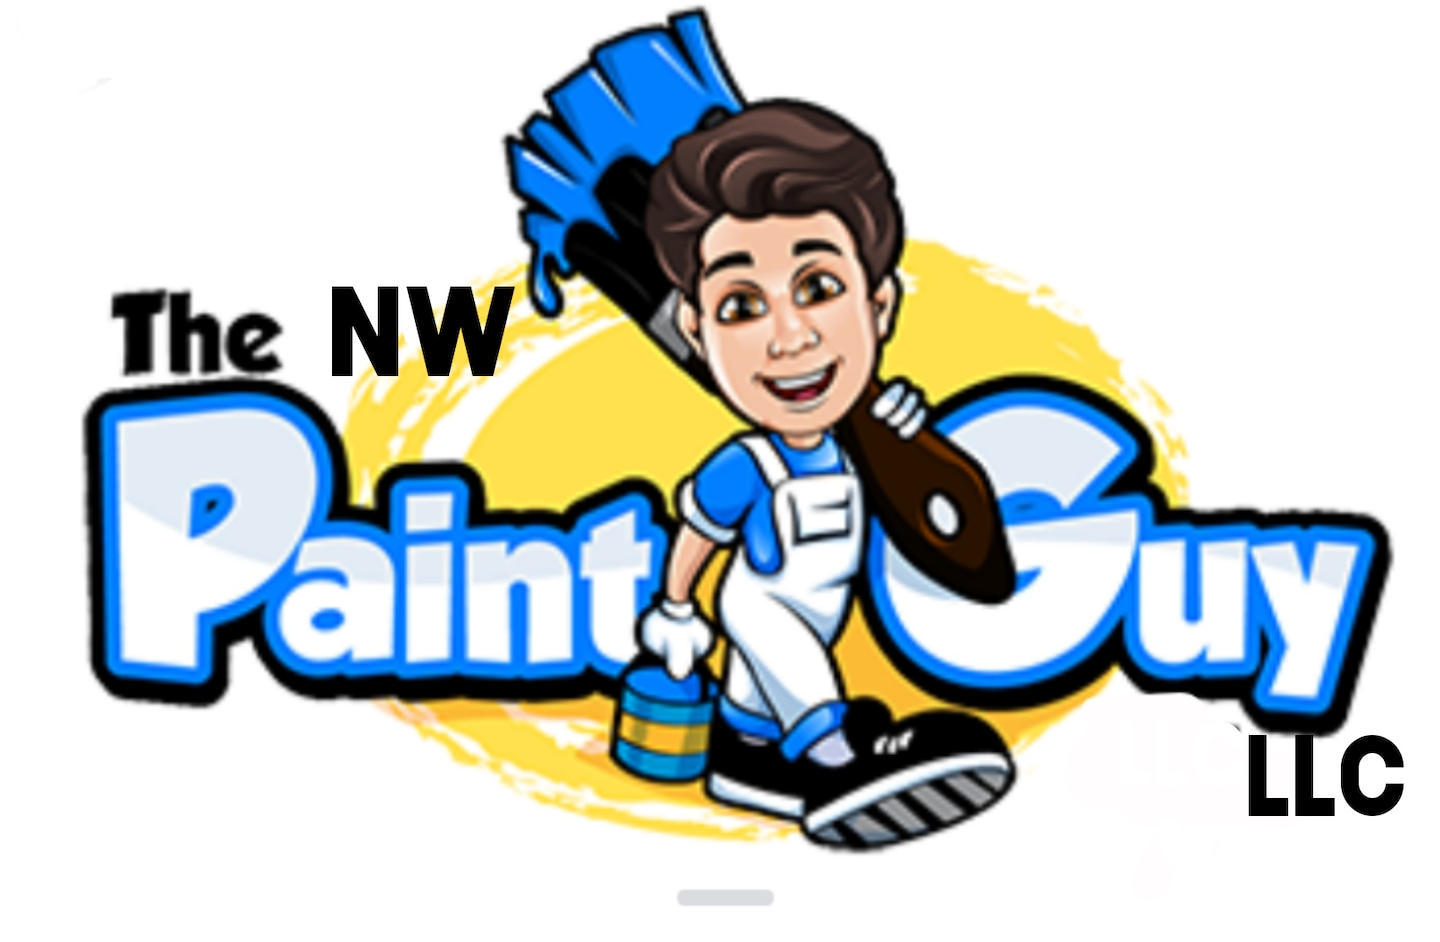 The NW Paint Guy LLC